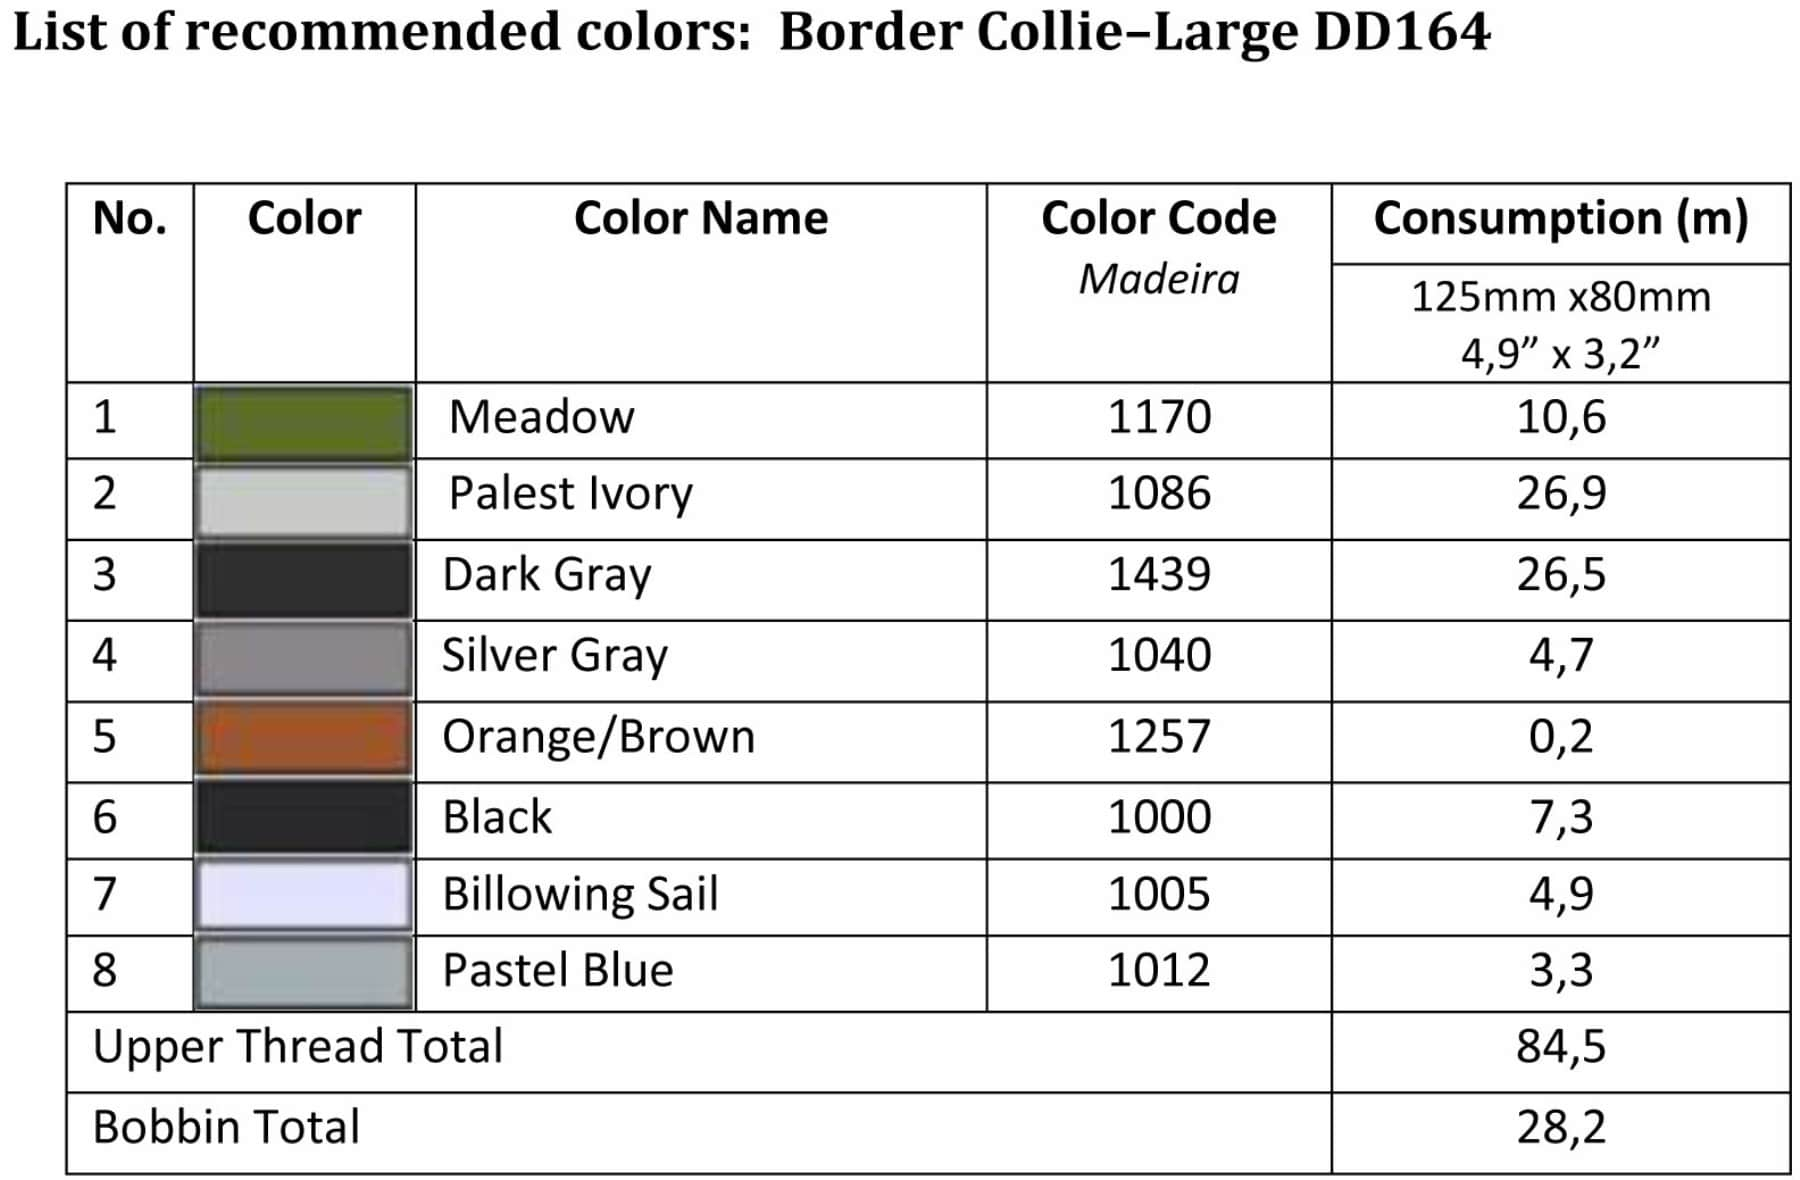 List of recommended colors - Large DD164